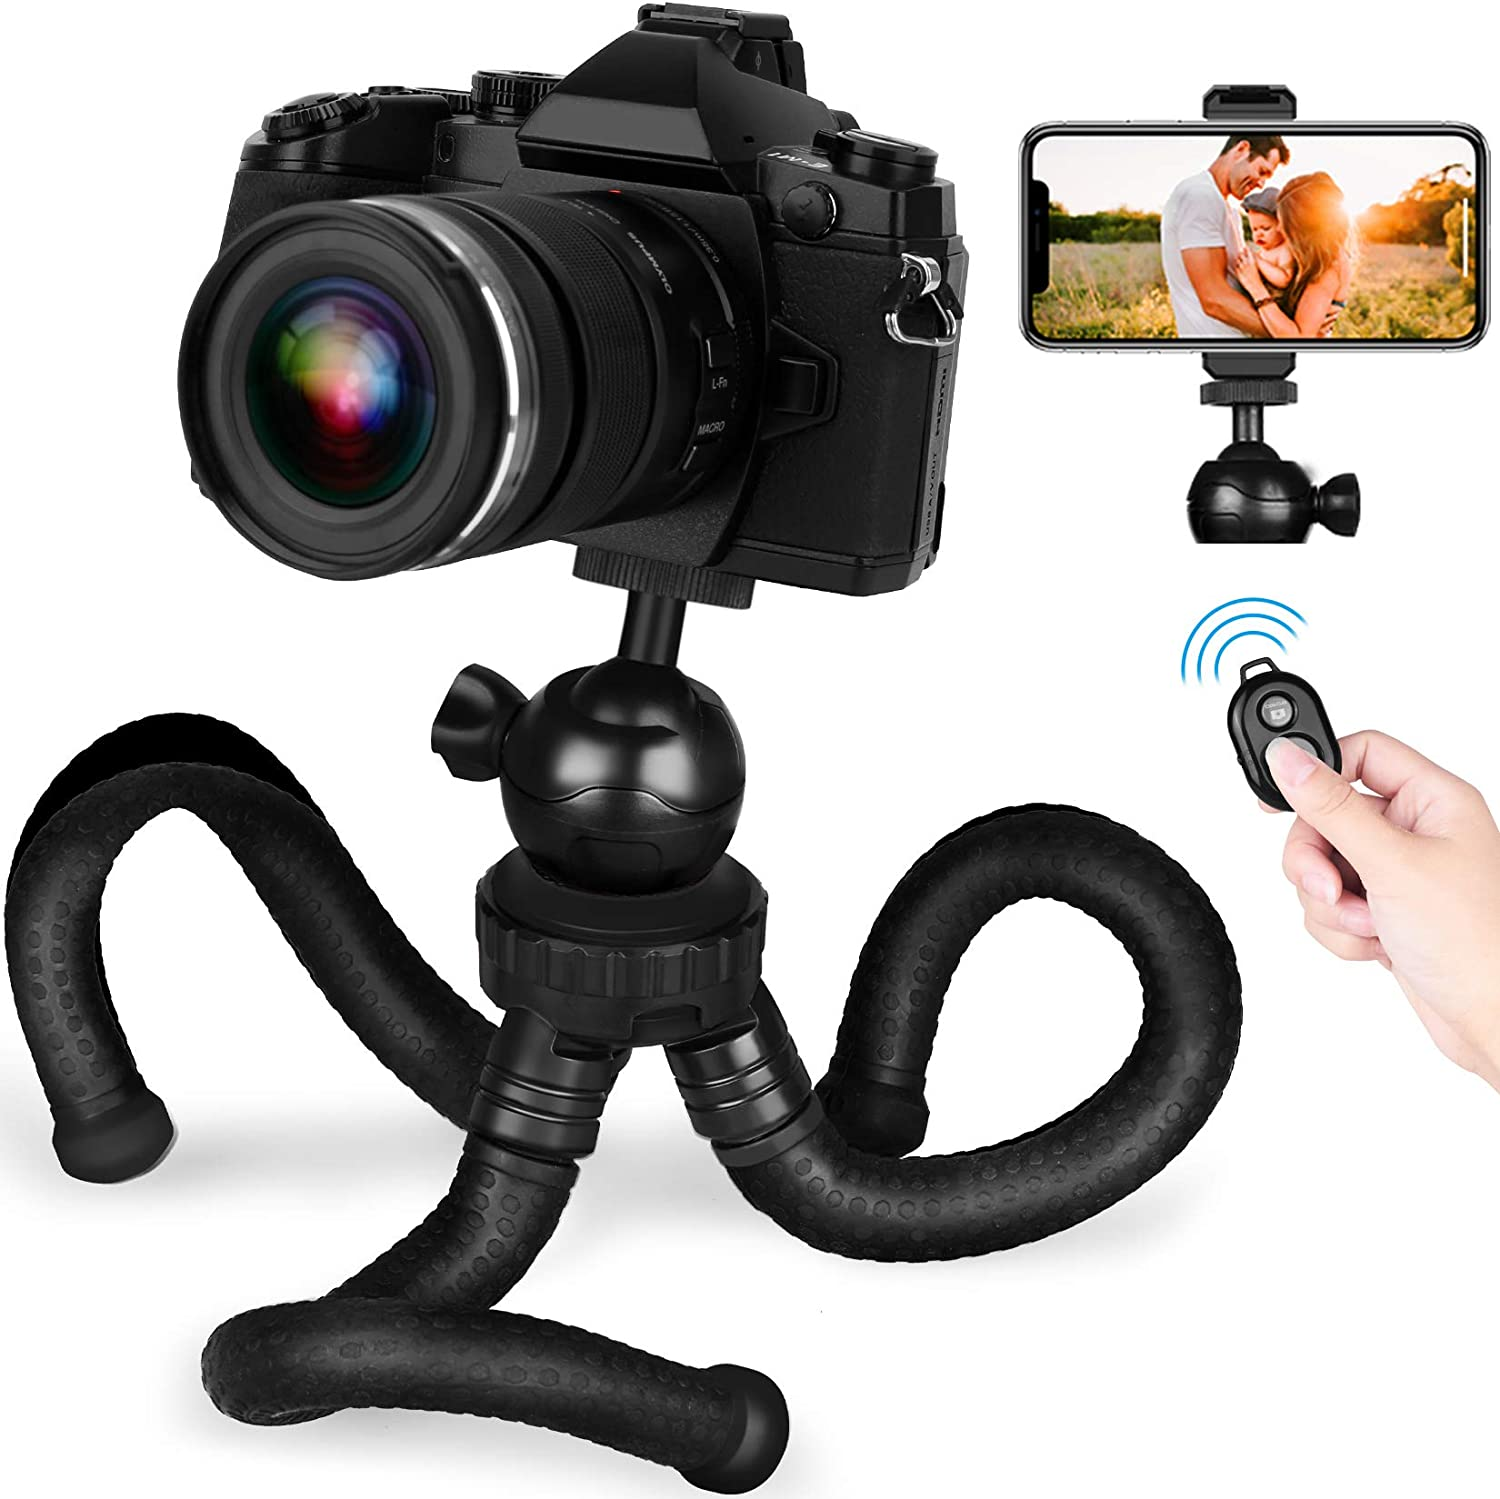 3kg Durable 24.5-57cm Adjustable Height Load Max GuiPing Pocket Mini Microspur Photos Magnesium Alloy Tripod Mount with 360 Degree Ball Head for DSLR /& Digital Camera